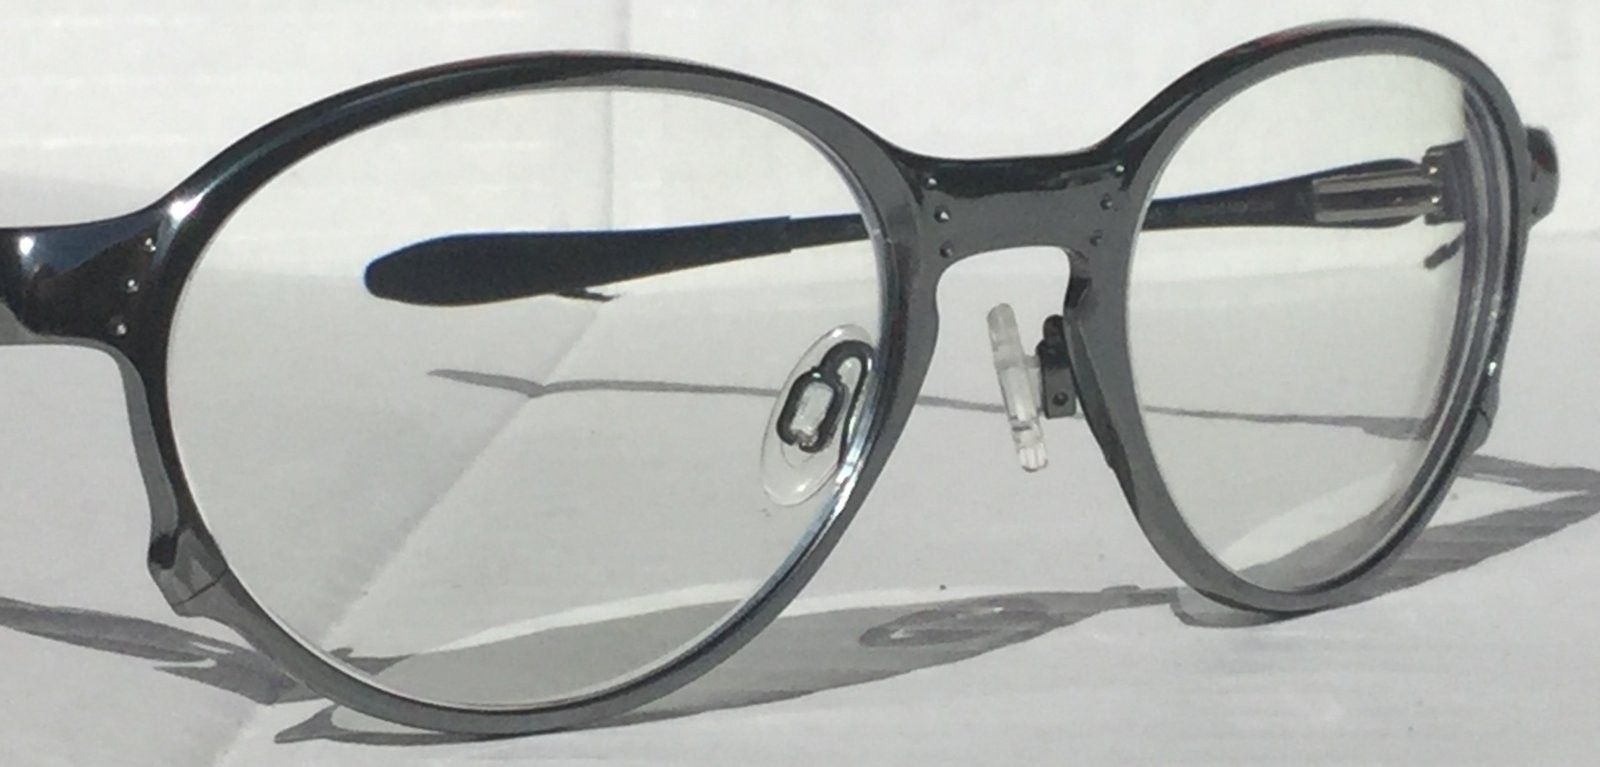 EyeZen lenses for Overlord OX5067 from Chris A Hardaway - image.jpeg